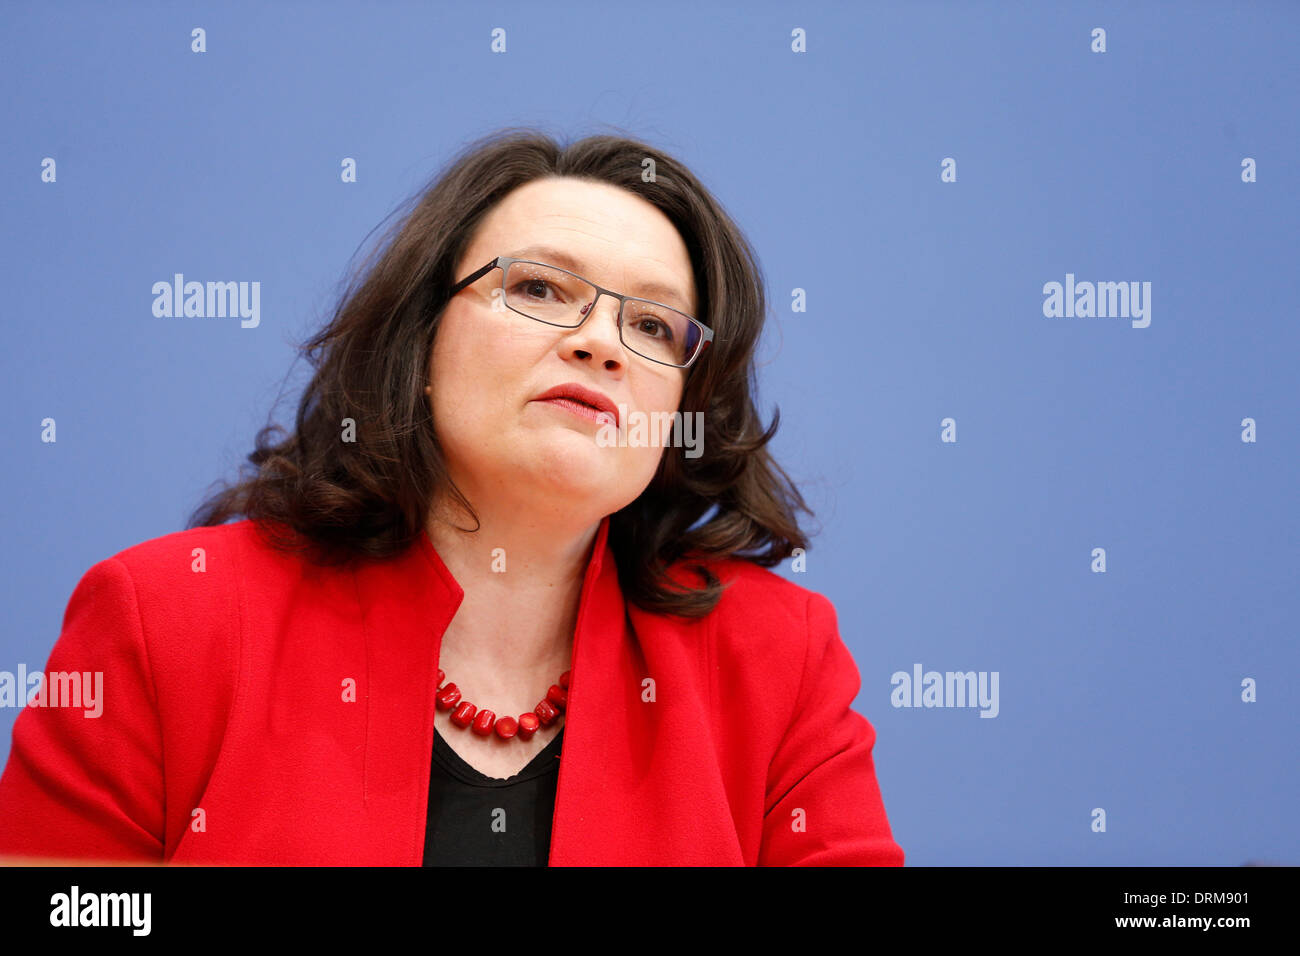 """Berlin, Germany. January 29th, 2014. Andrea Nahles (SPD), Minister of Labour and Social Affairs, talk at the House Federal Press Conference in Berlin on the them """"German pension package of the Federal Government """". / Picture: Andrea Nahles (SPD), Minister of Labour and Social Affairs. Credit:  Reynaldo Chaib Paganelli/Alamy Live News Stock Photo"""